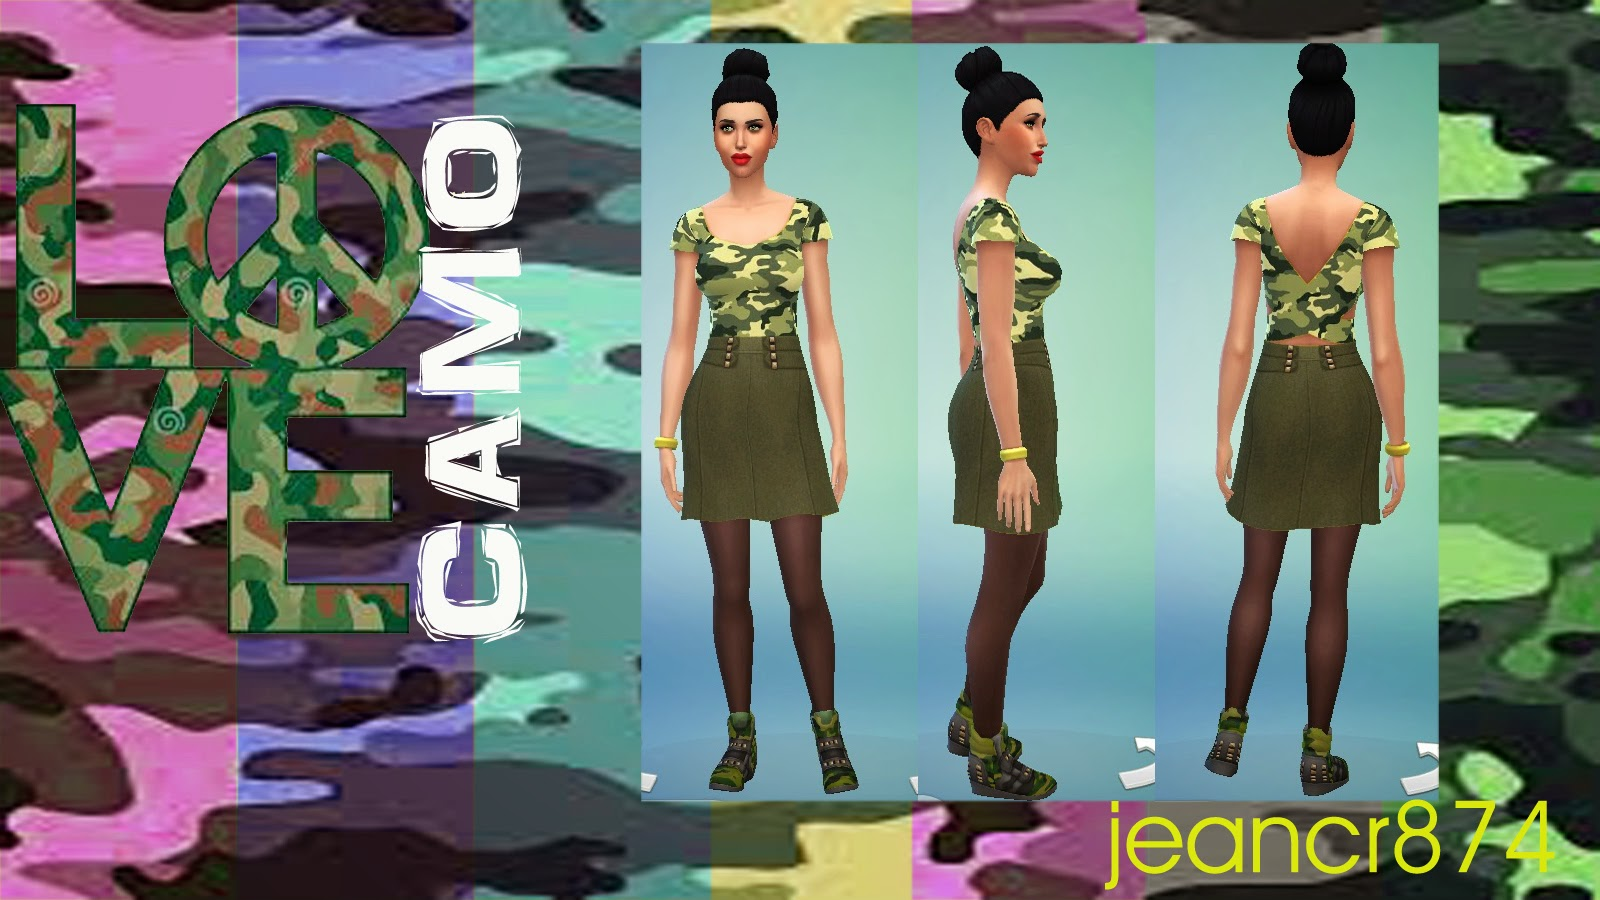 Love Camo FW14/15 set at La Boutique de Jean